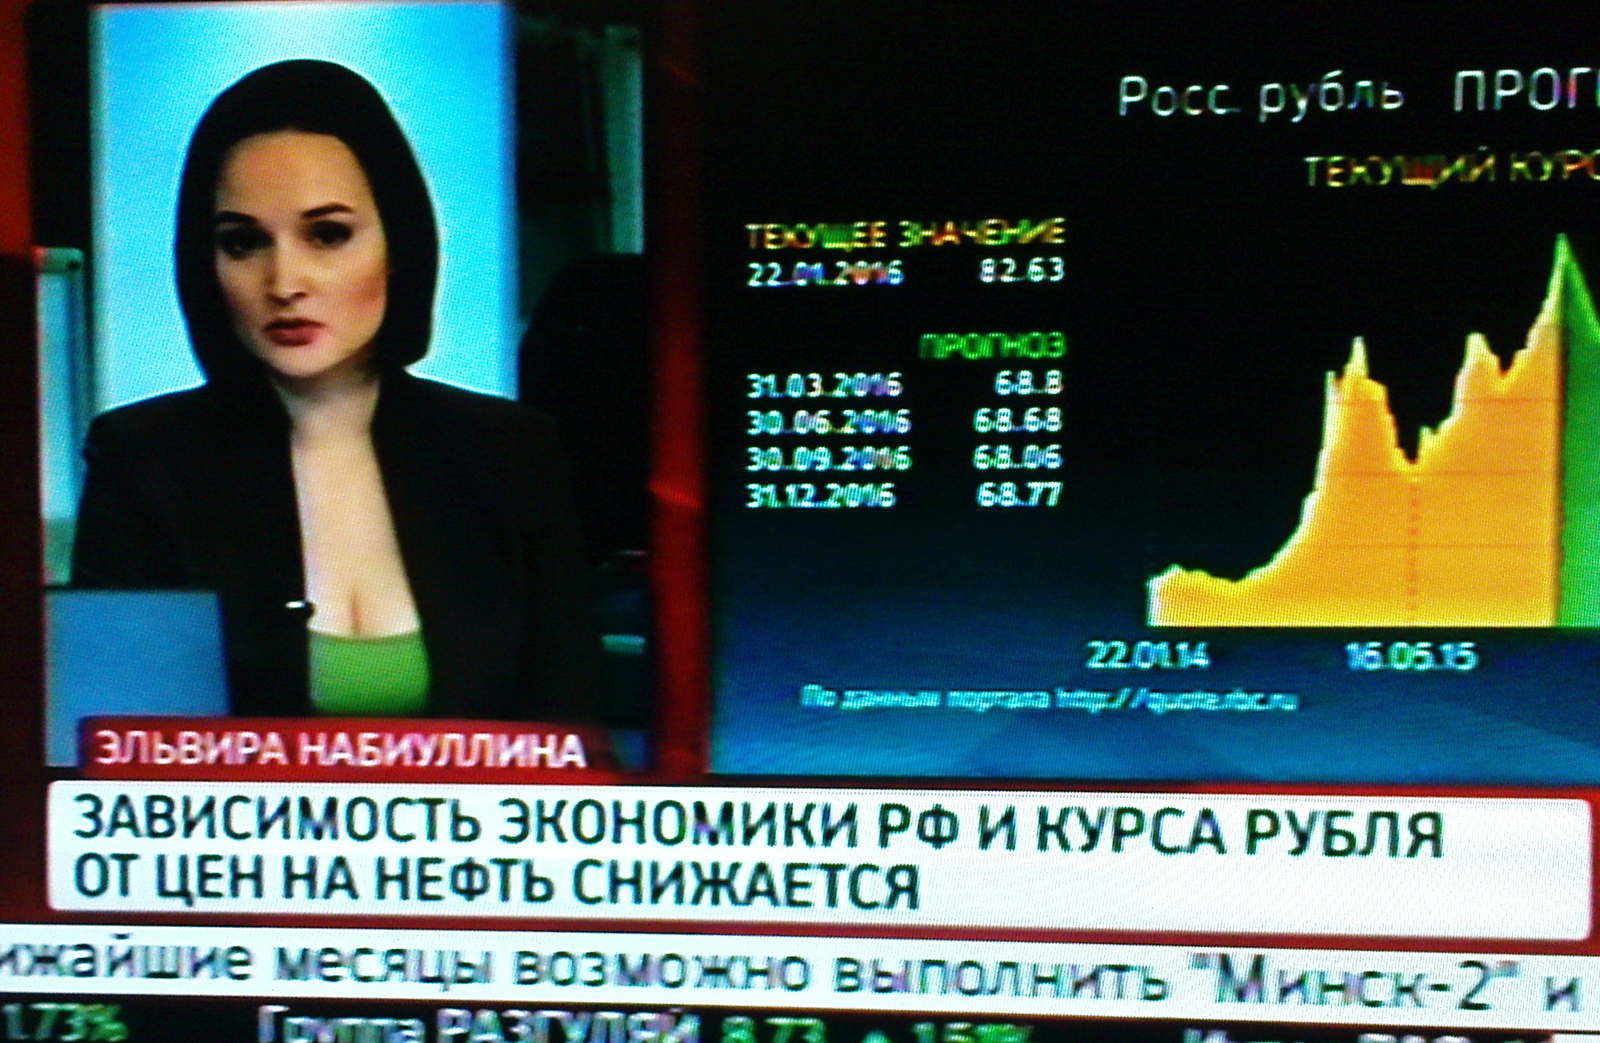 Рбк курс how much is one pip worth in forex